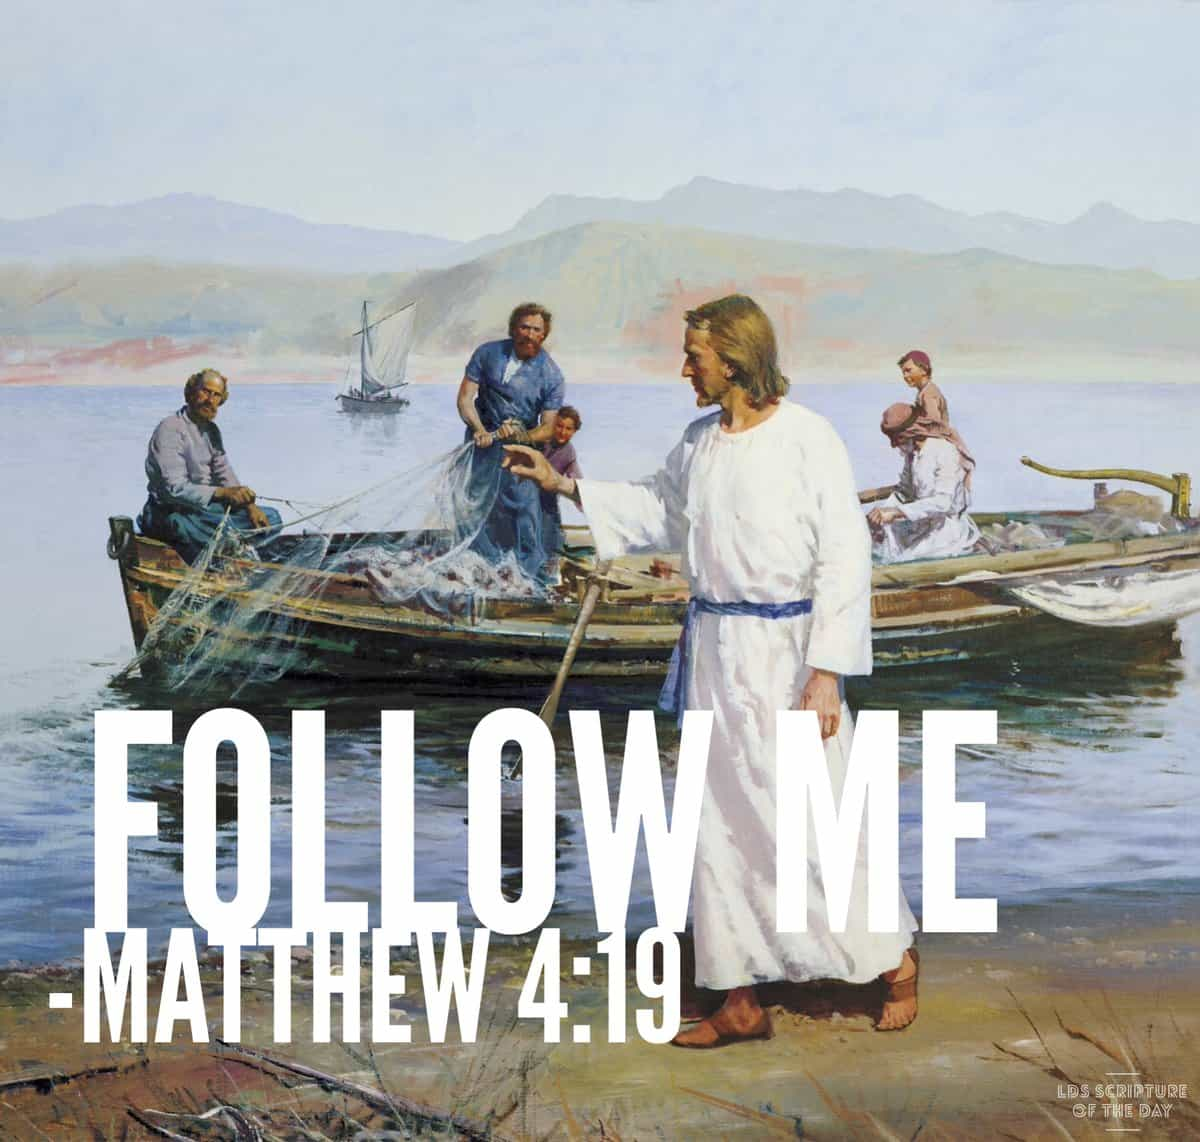 Follow me. Matthew 4:19